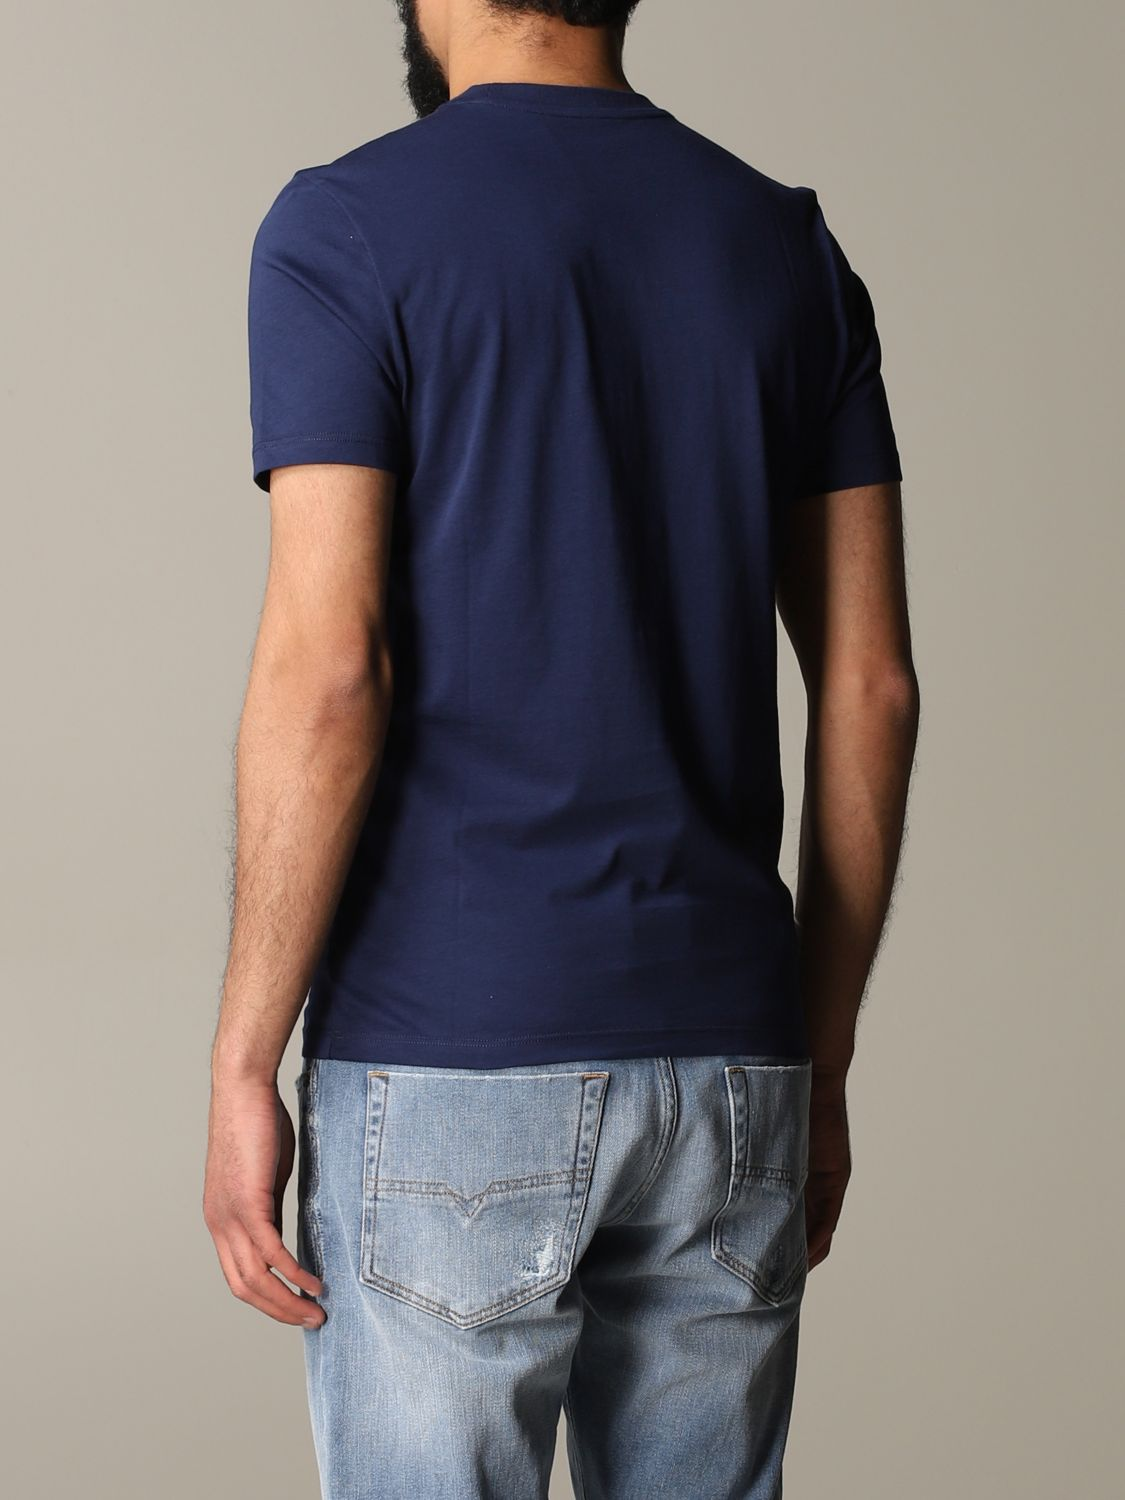 T-shirt Blauer: T-shirt men Blauer blue 3